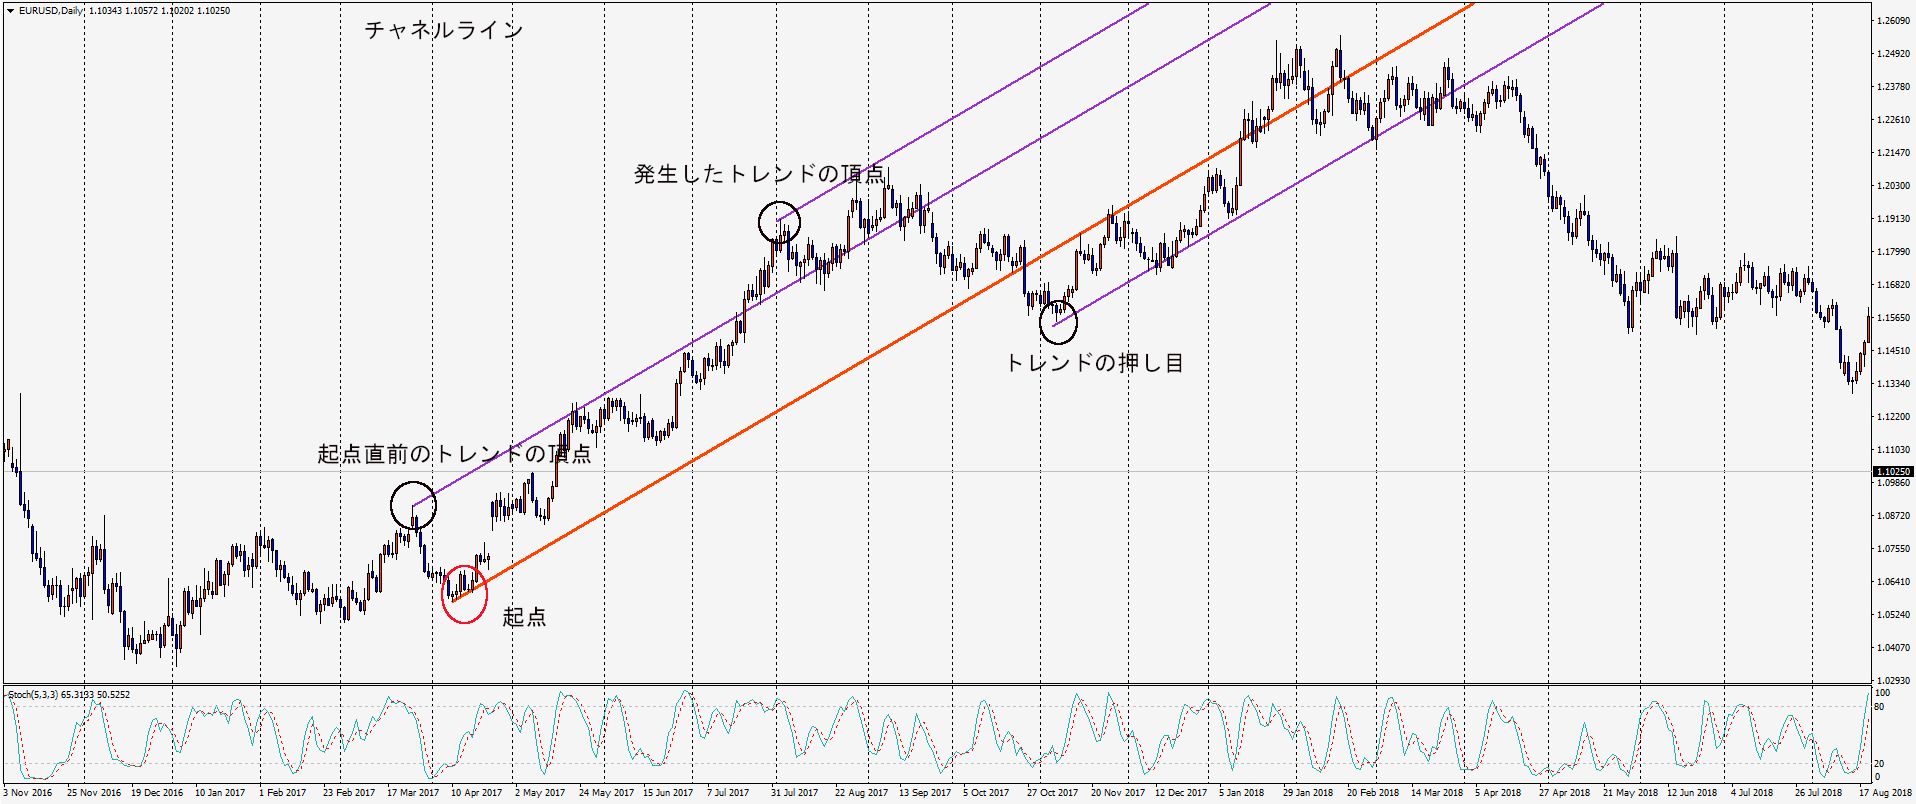 EURUSDDaily-channelline